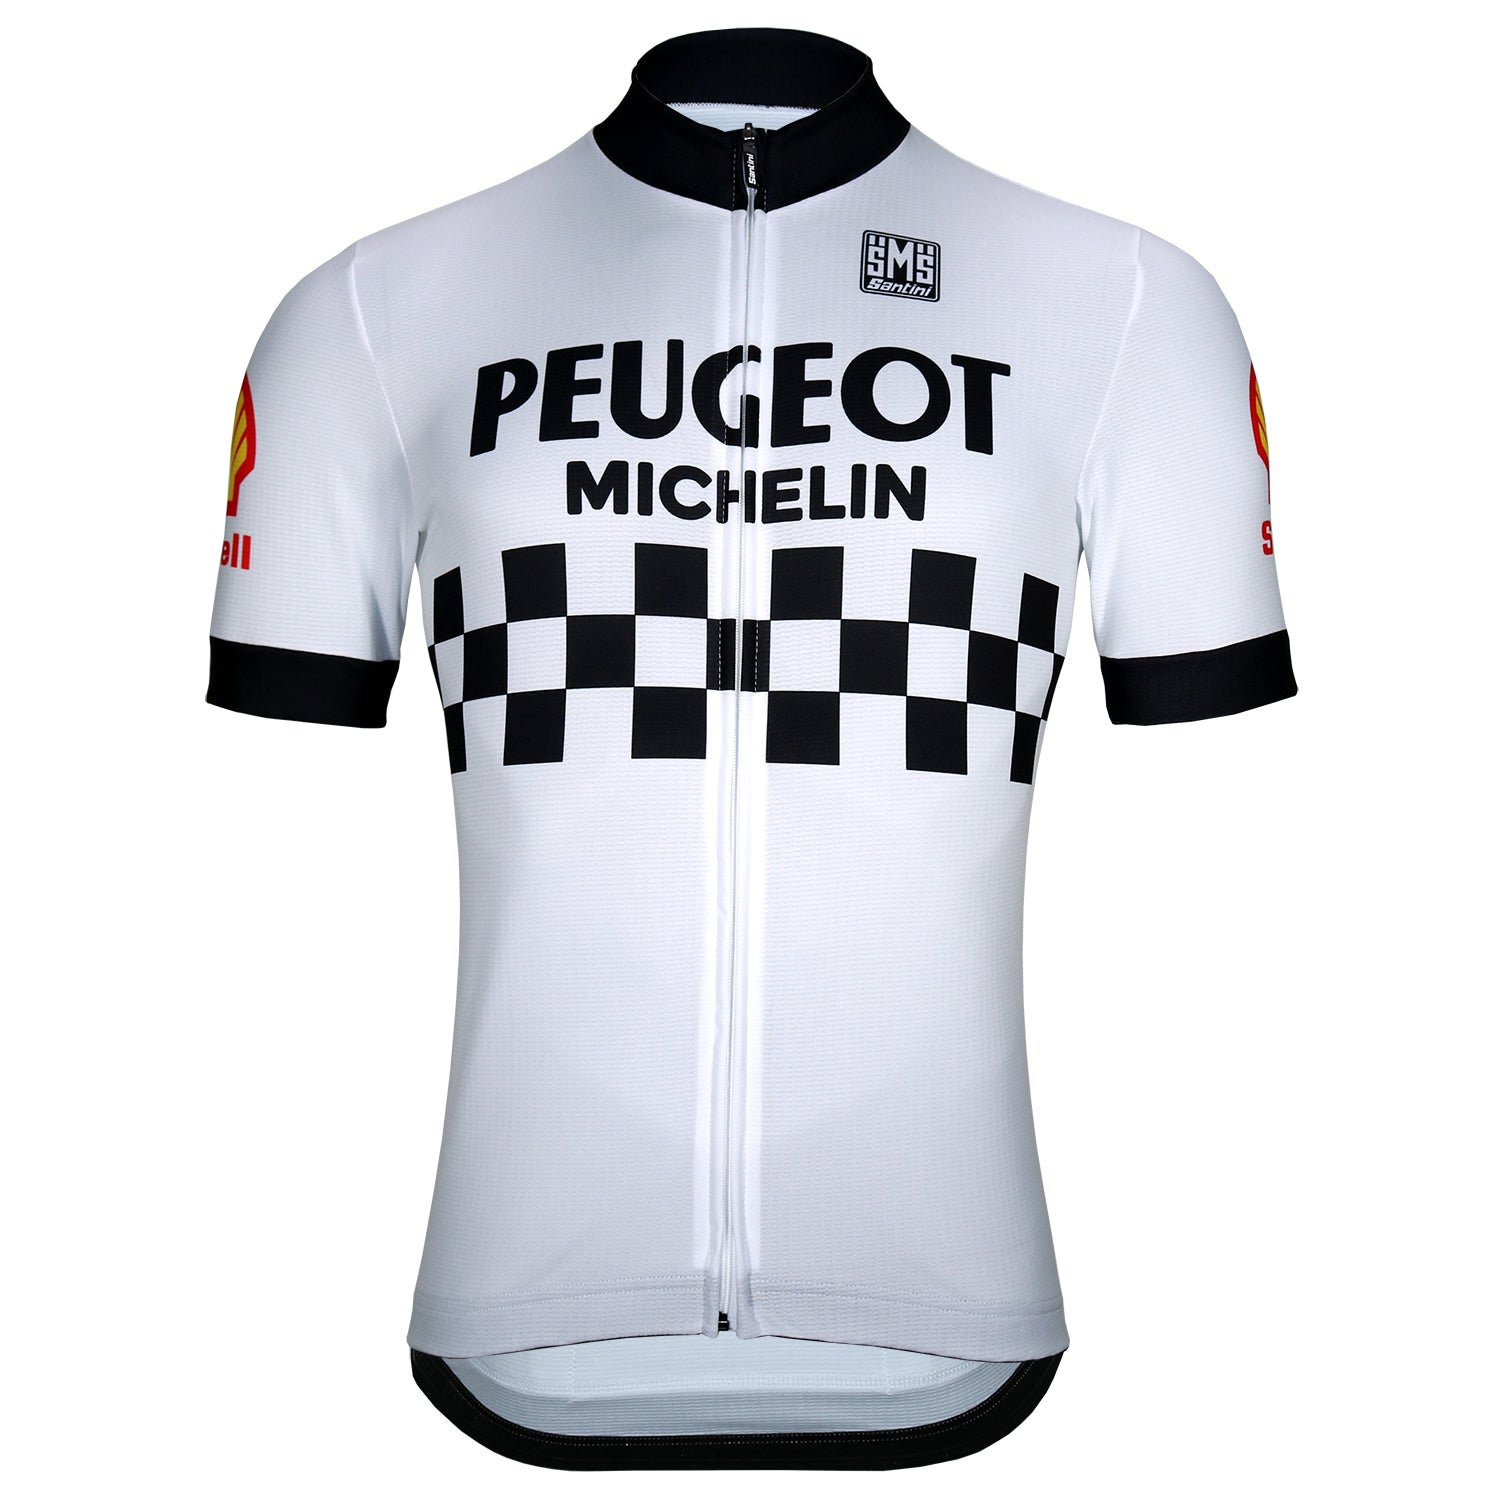 Peugeot Shell Michelin Retro Jersey